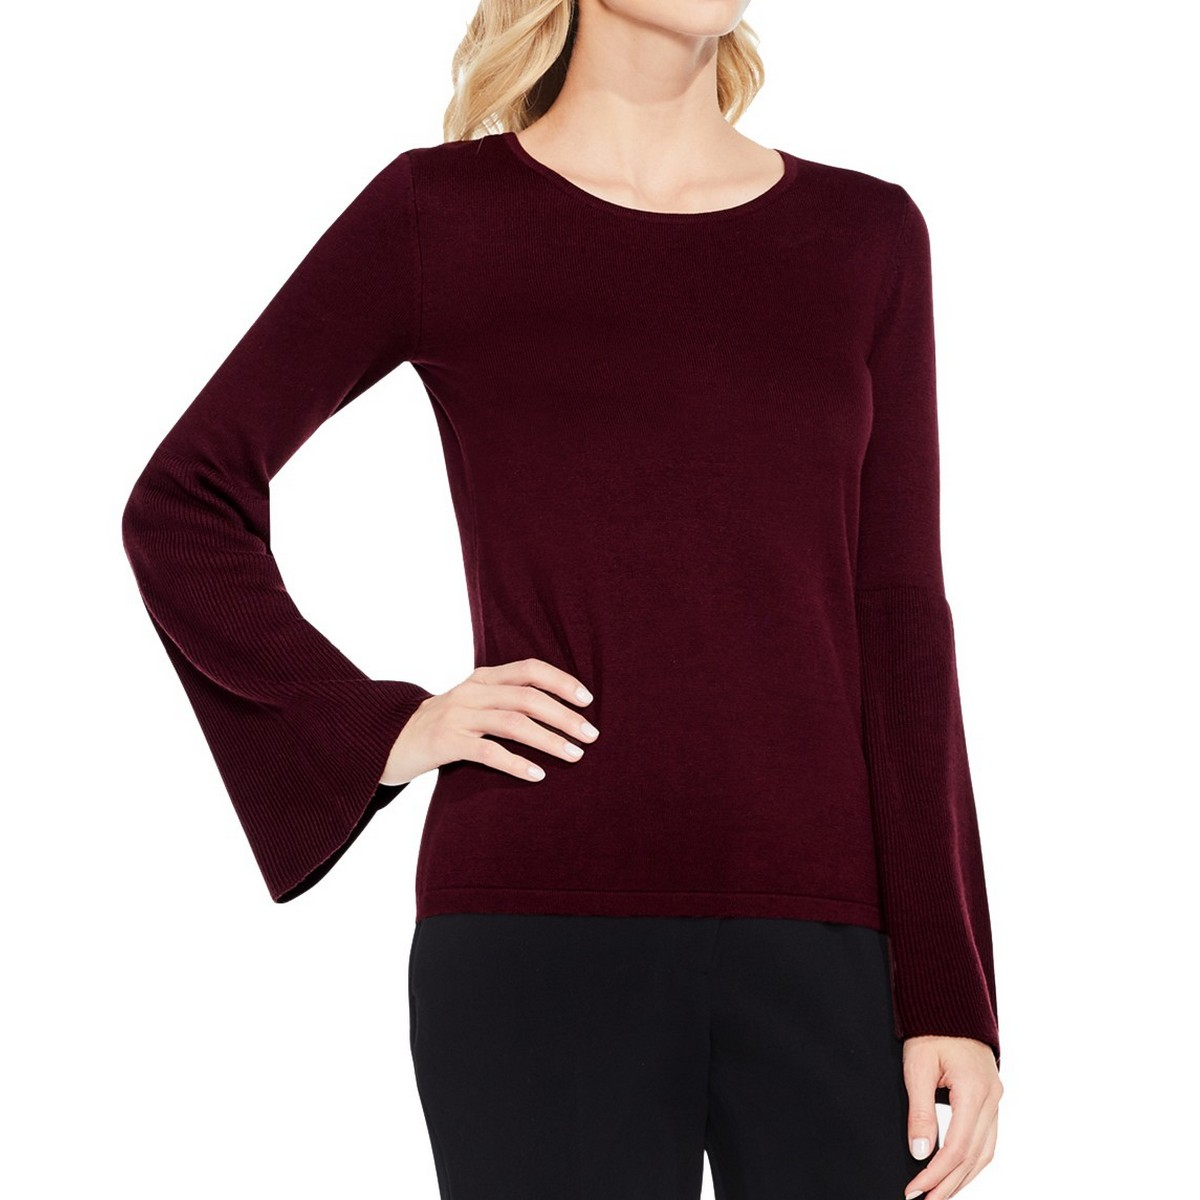 dfffa8eb8bd Details about VINCE CAMUTO NEW Women s Burgundy Bell Sleeve Crewneck Sweater  Top XS TEDO